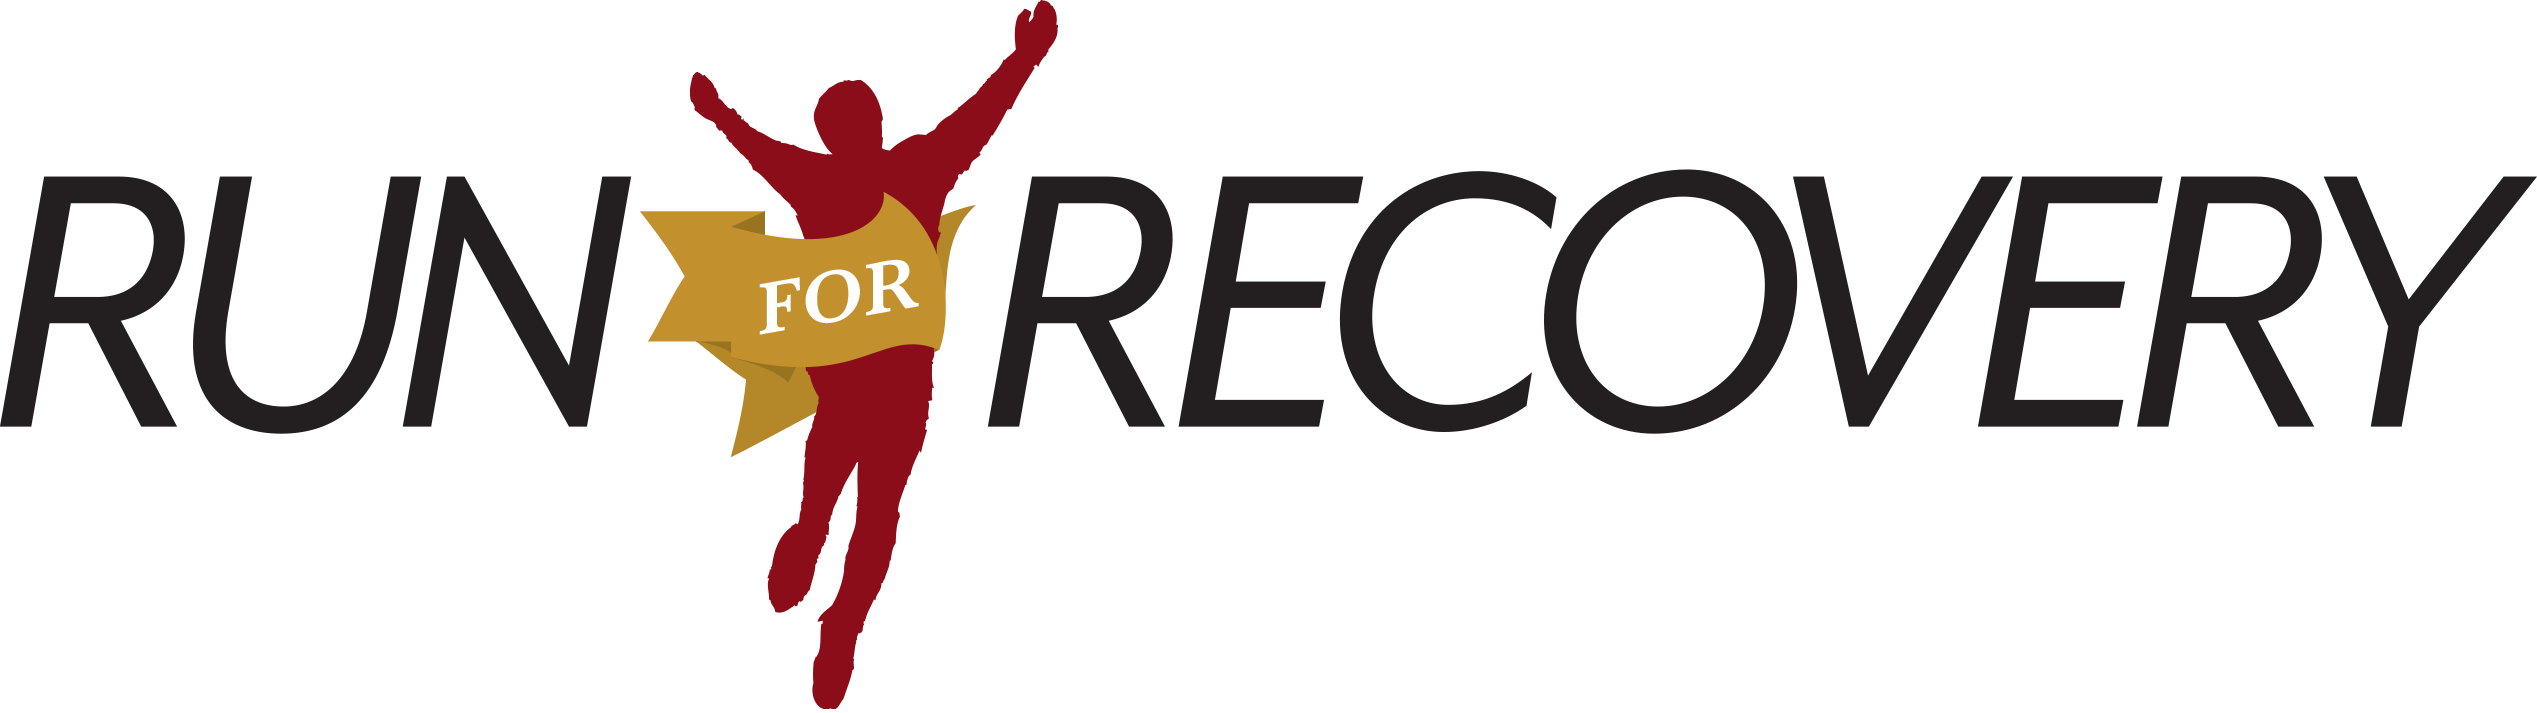 Run for Recovery Logo